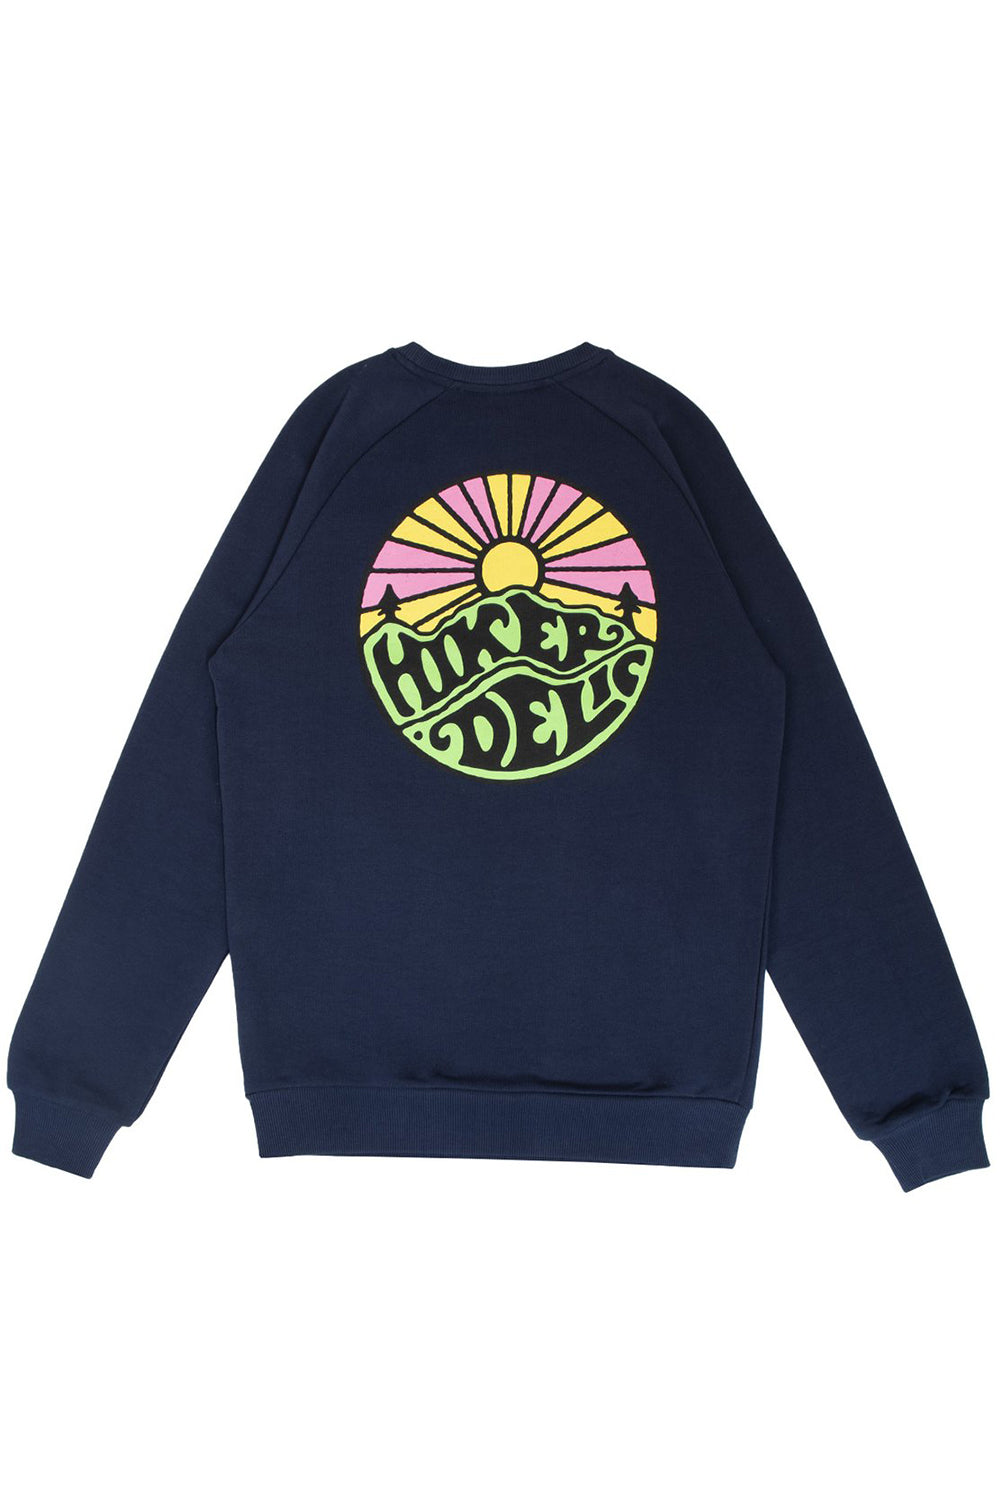 Hikerdelic Original Logo Sweatshirt in Navy